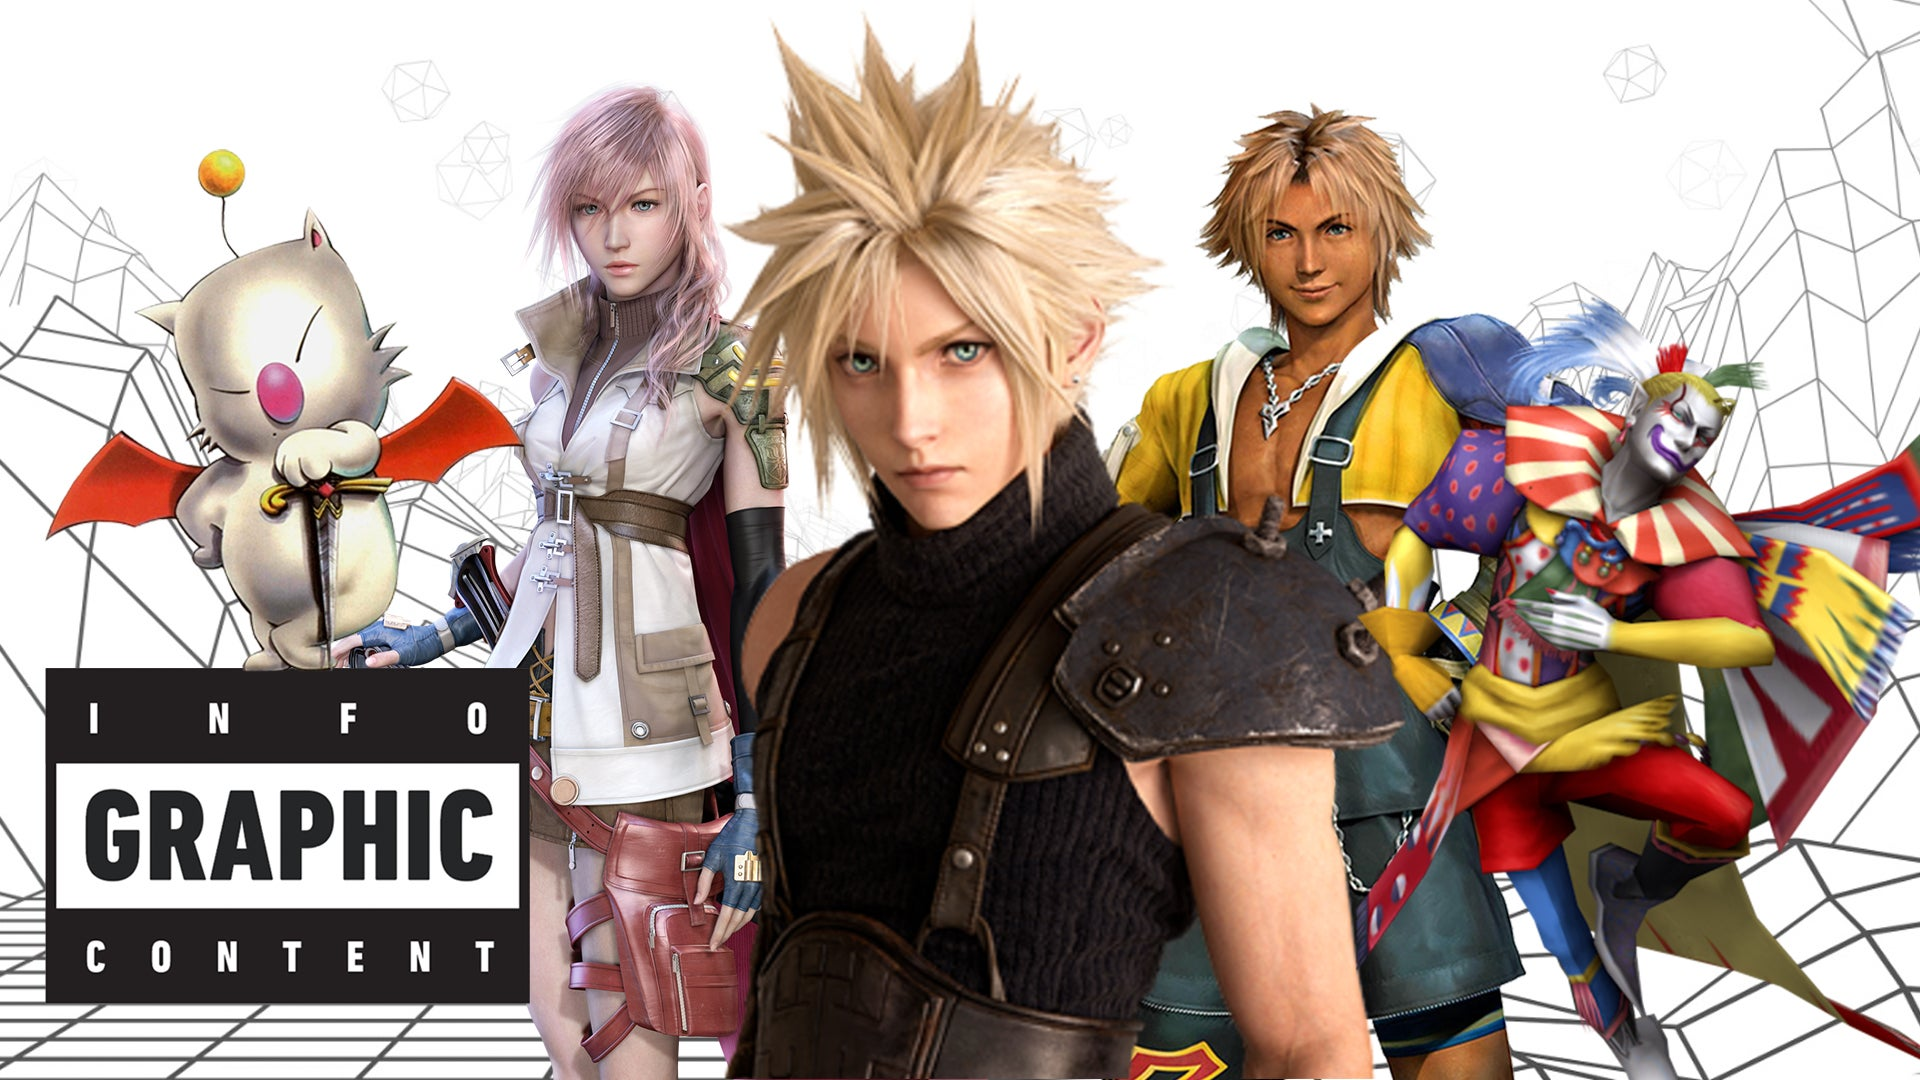 Final Fantasy is one of the longest-running video game franchises of all-time, with the original game releasing for the Famicom on December 18, 1987, and coming to the NES in May of 1990. With over 30 years of rich history, there's plenty to celebrate. So, hop on your Chocobo and let's explore Final Fantasy by the numbers.